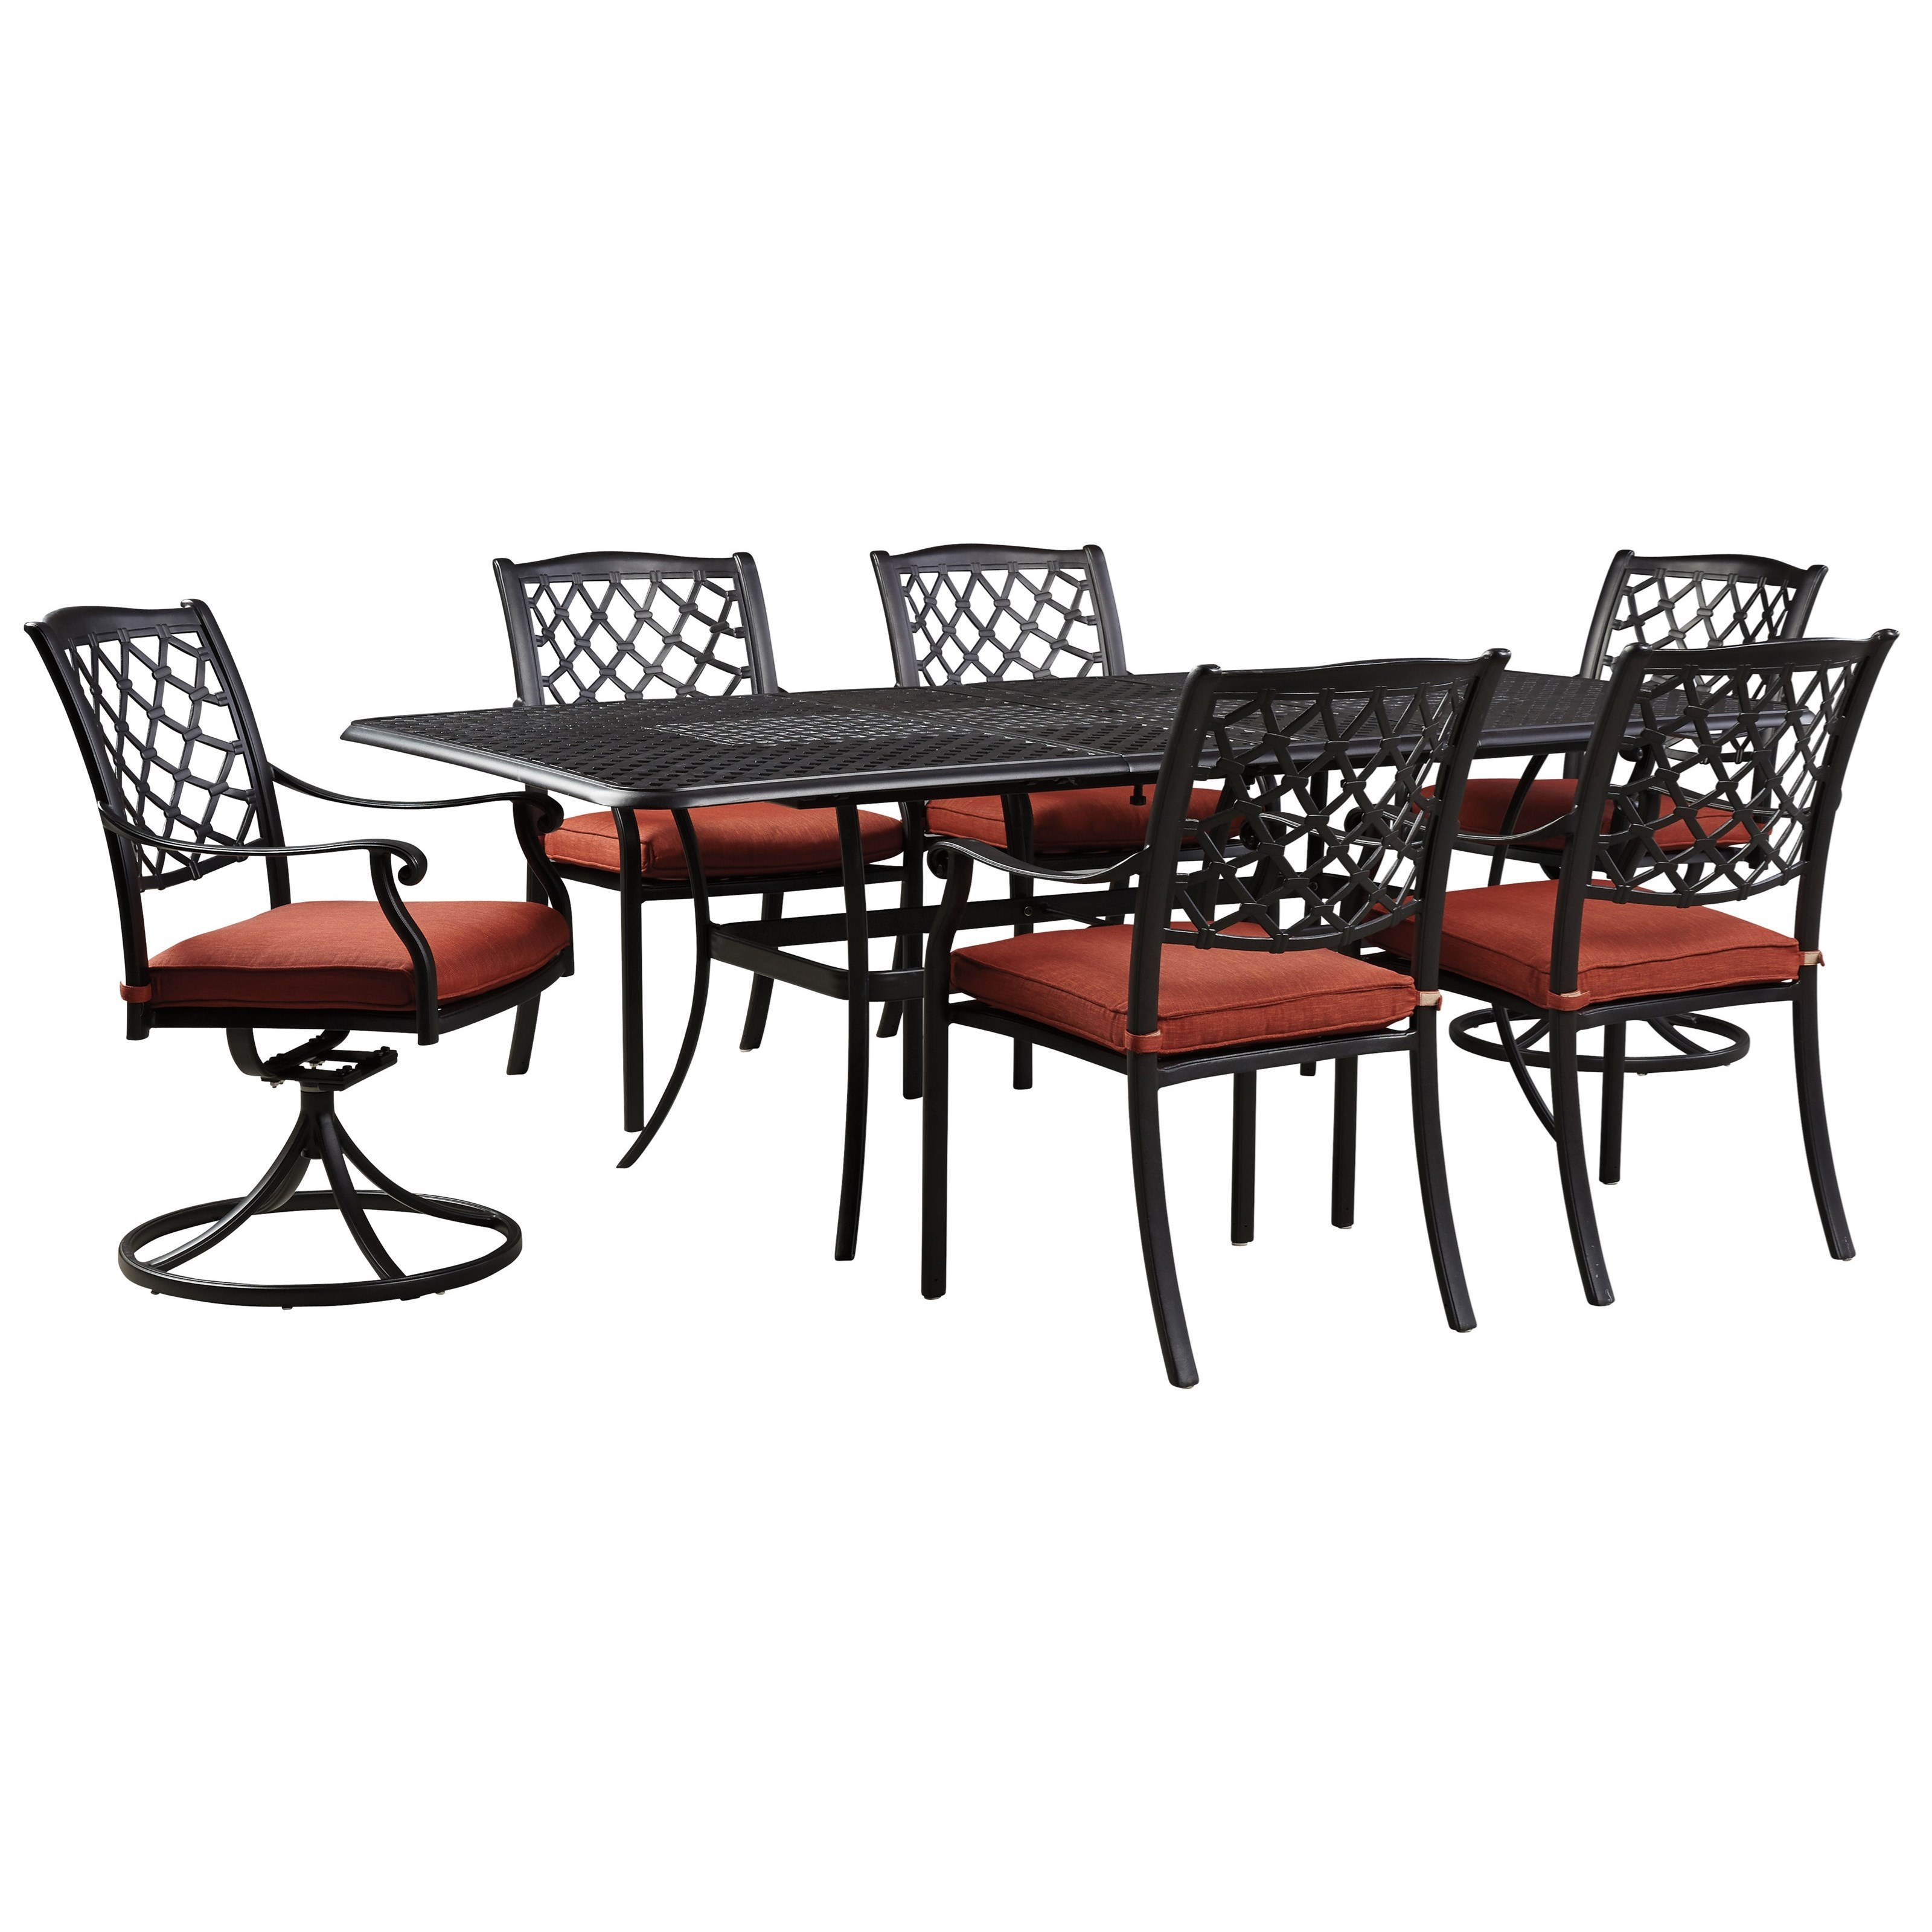 Tanglevale Outdoor Dining Table Set by Signature Design by Ashley at Lapeer Furniture & Mattress Center